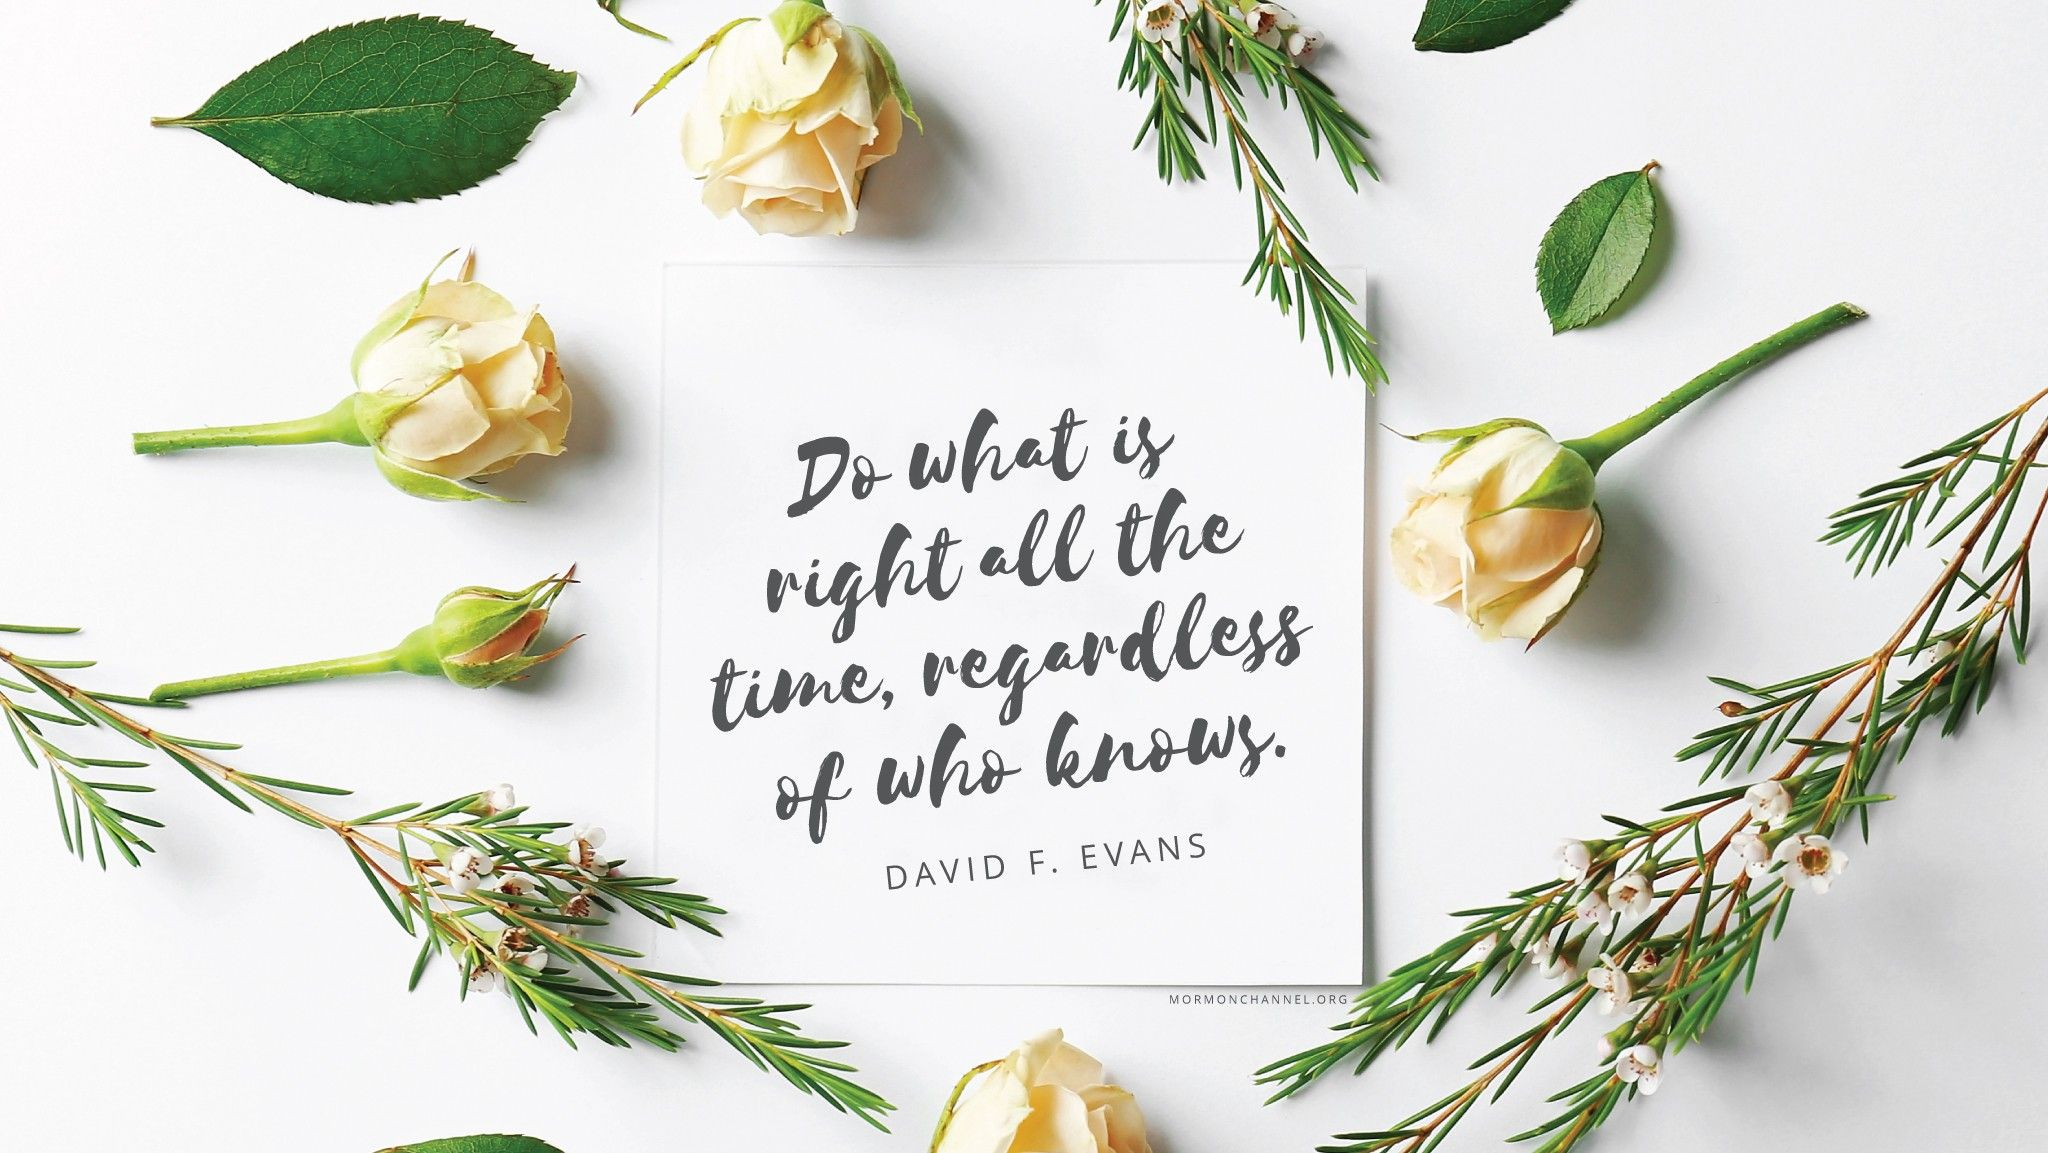 """""""Do what is right all the time, regardless of who knows.""""—Elder David F. Evans, """"Tenacity and Discipleship"""""""